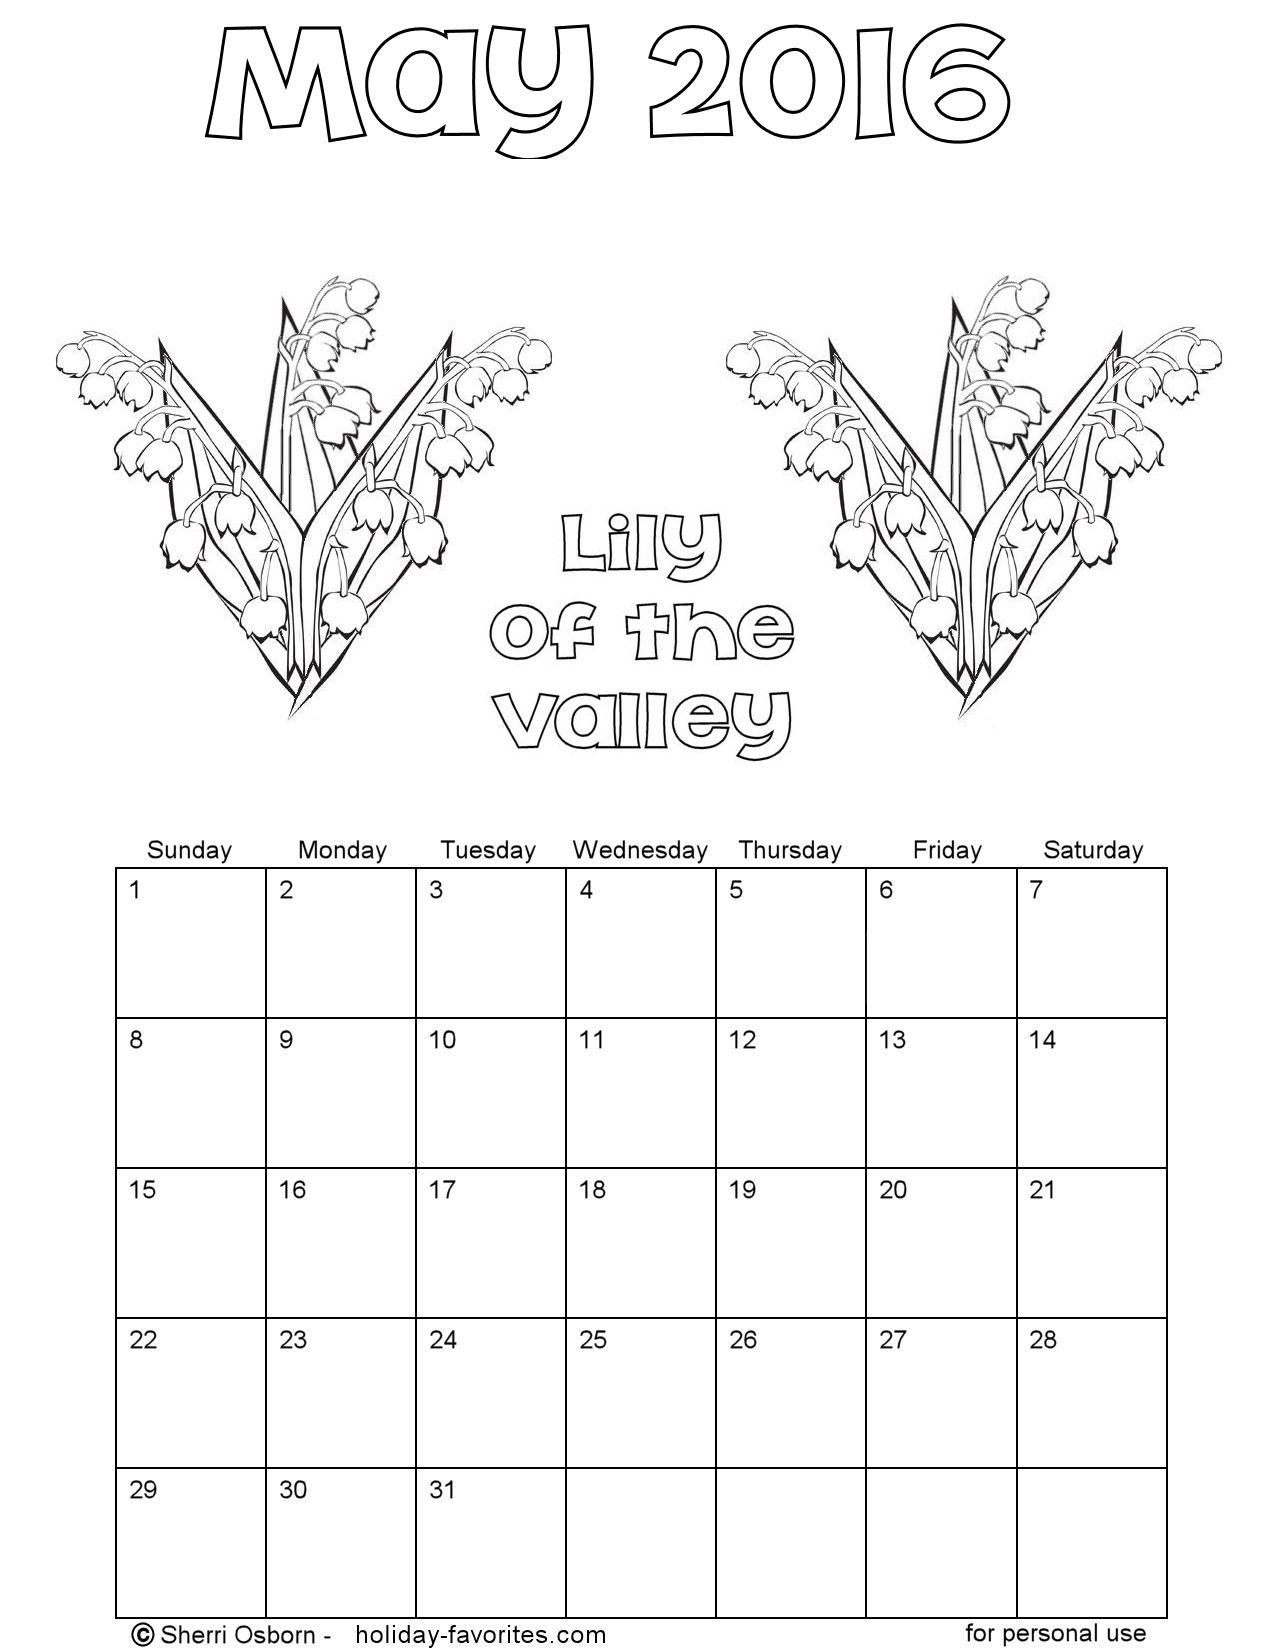 May 2016 Lily-of-the-Valley Calendar Page